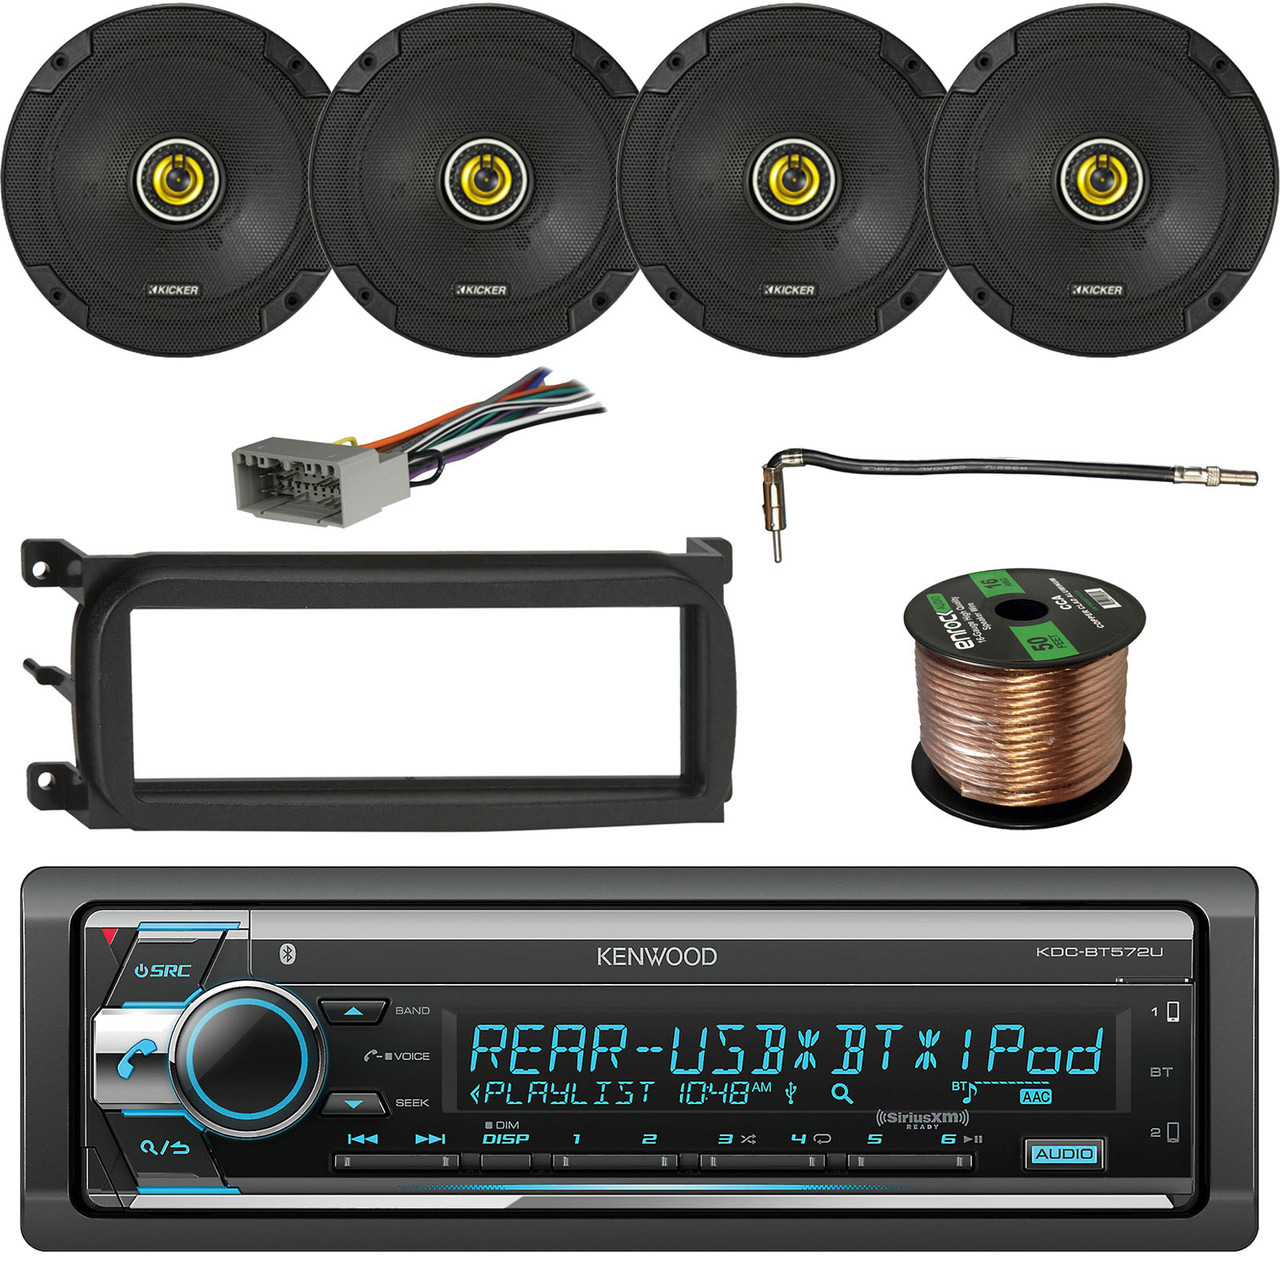 hight resolution of kenwood stereo receiver bluetooth w kicker 600w speakers 2 pairs enrock single din dash kit for chry dodge jeep metra chrysler antenna adapter cable